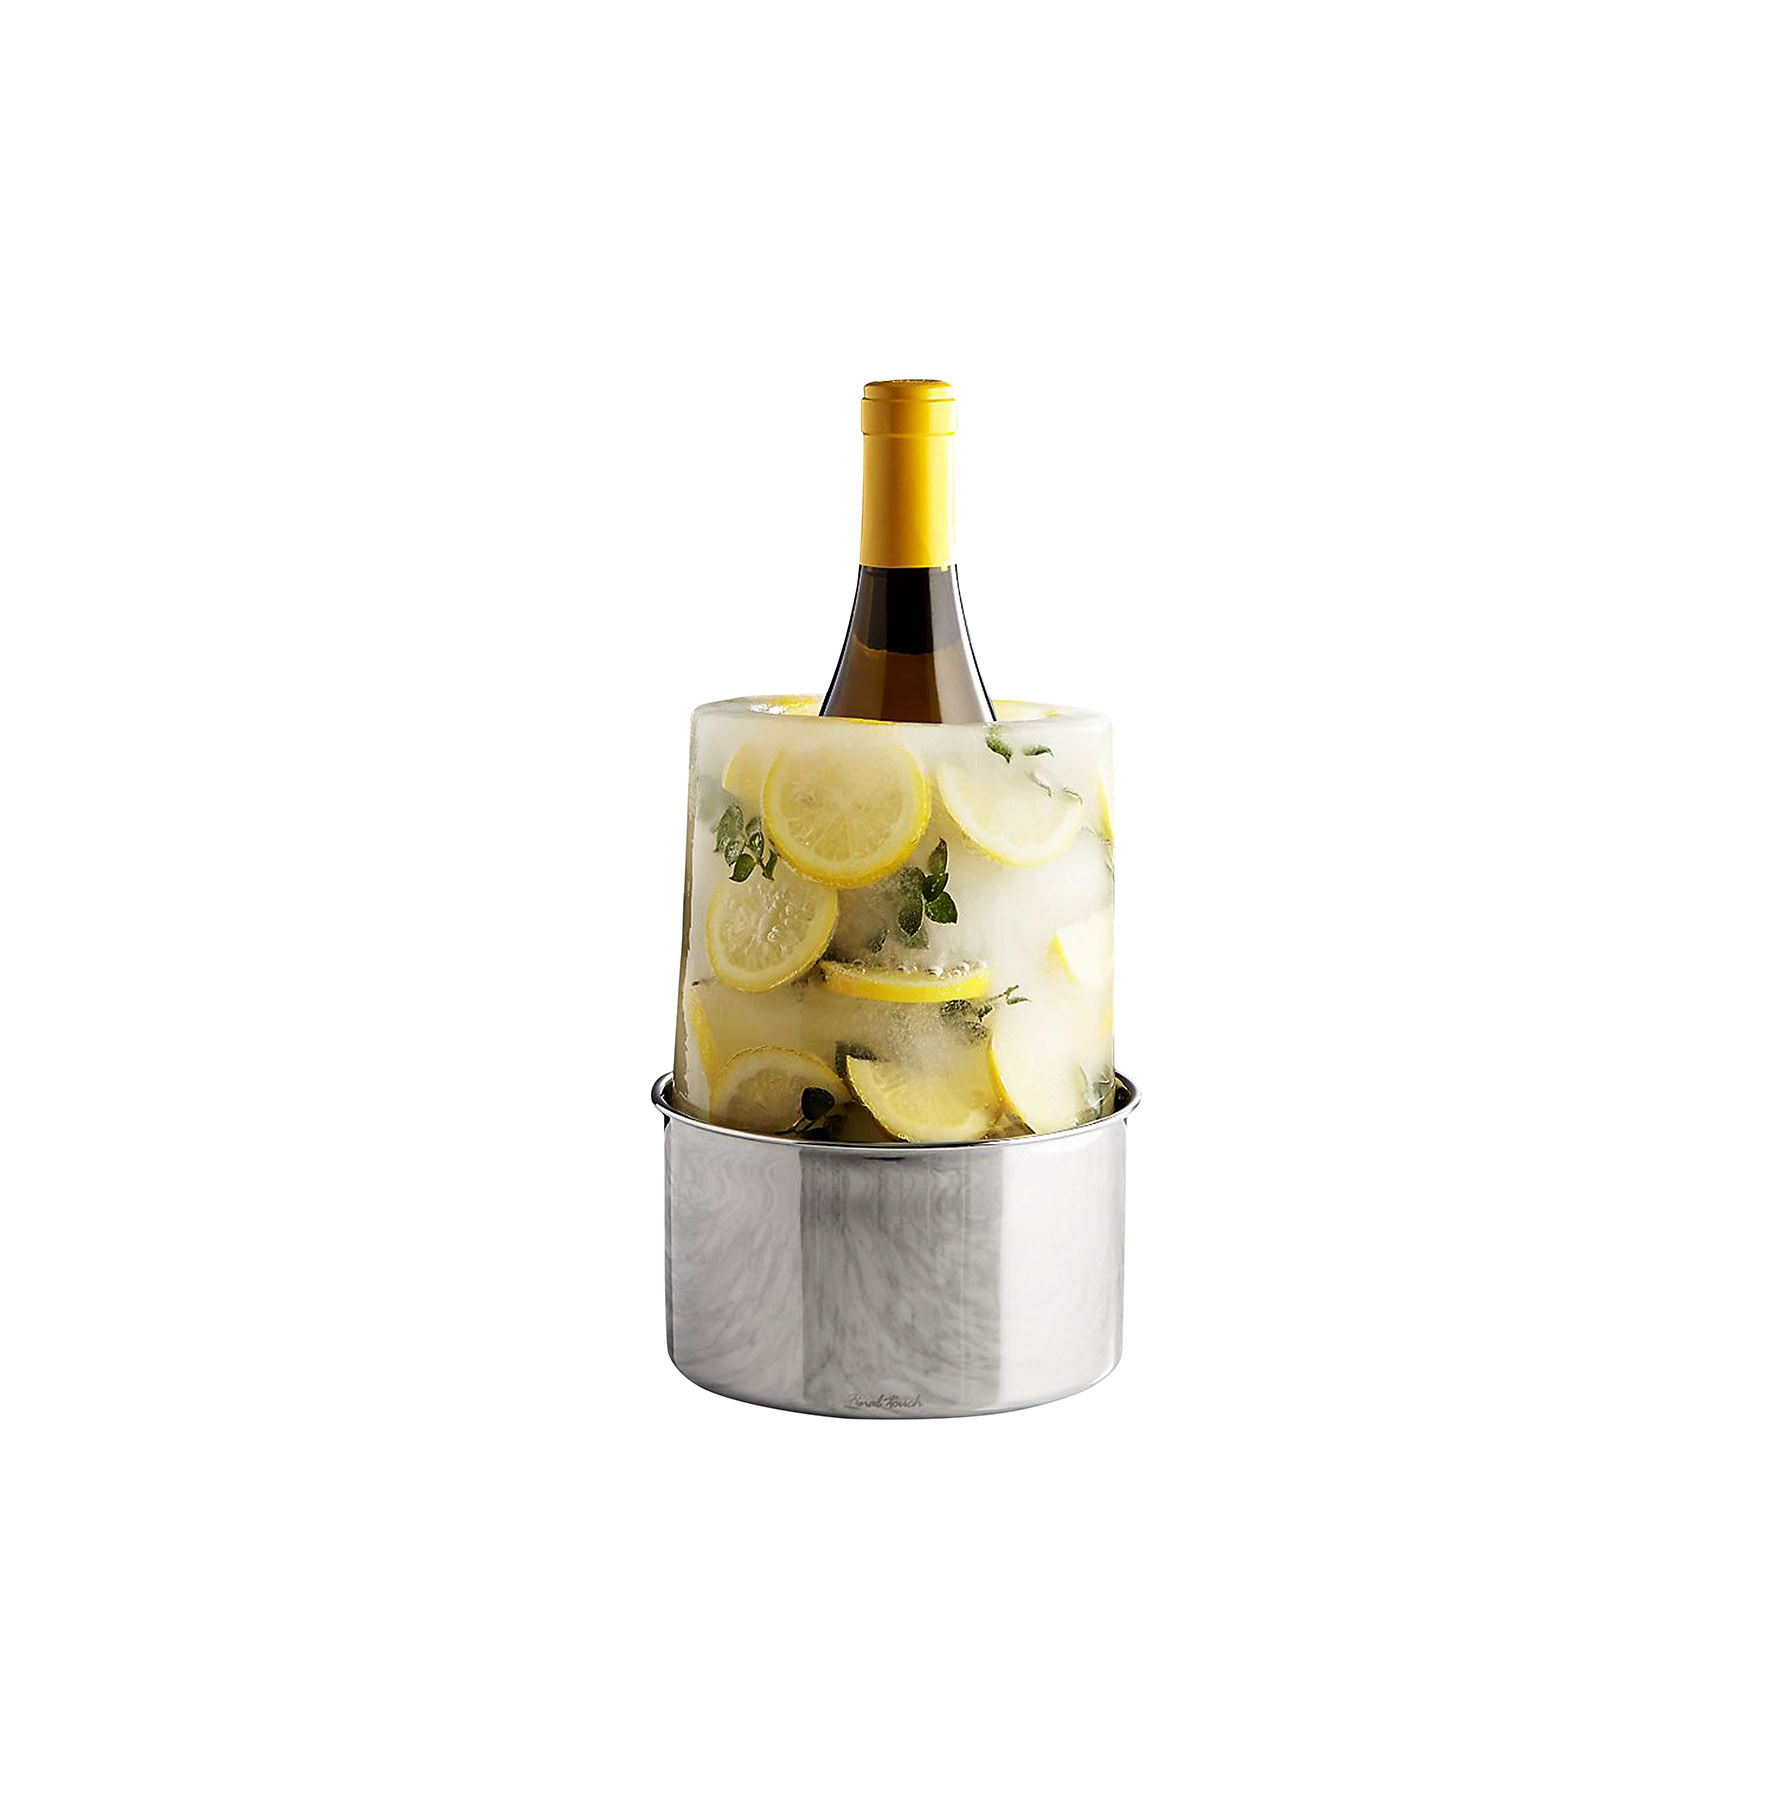 Ice Mold/Wine Bottle Chiller